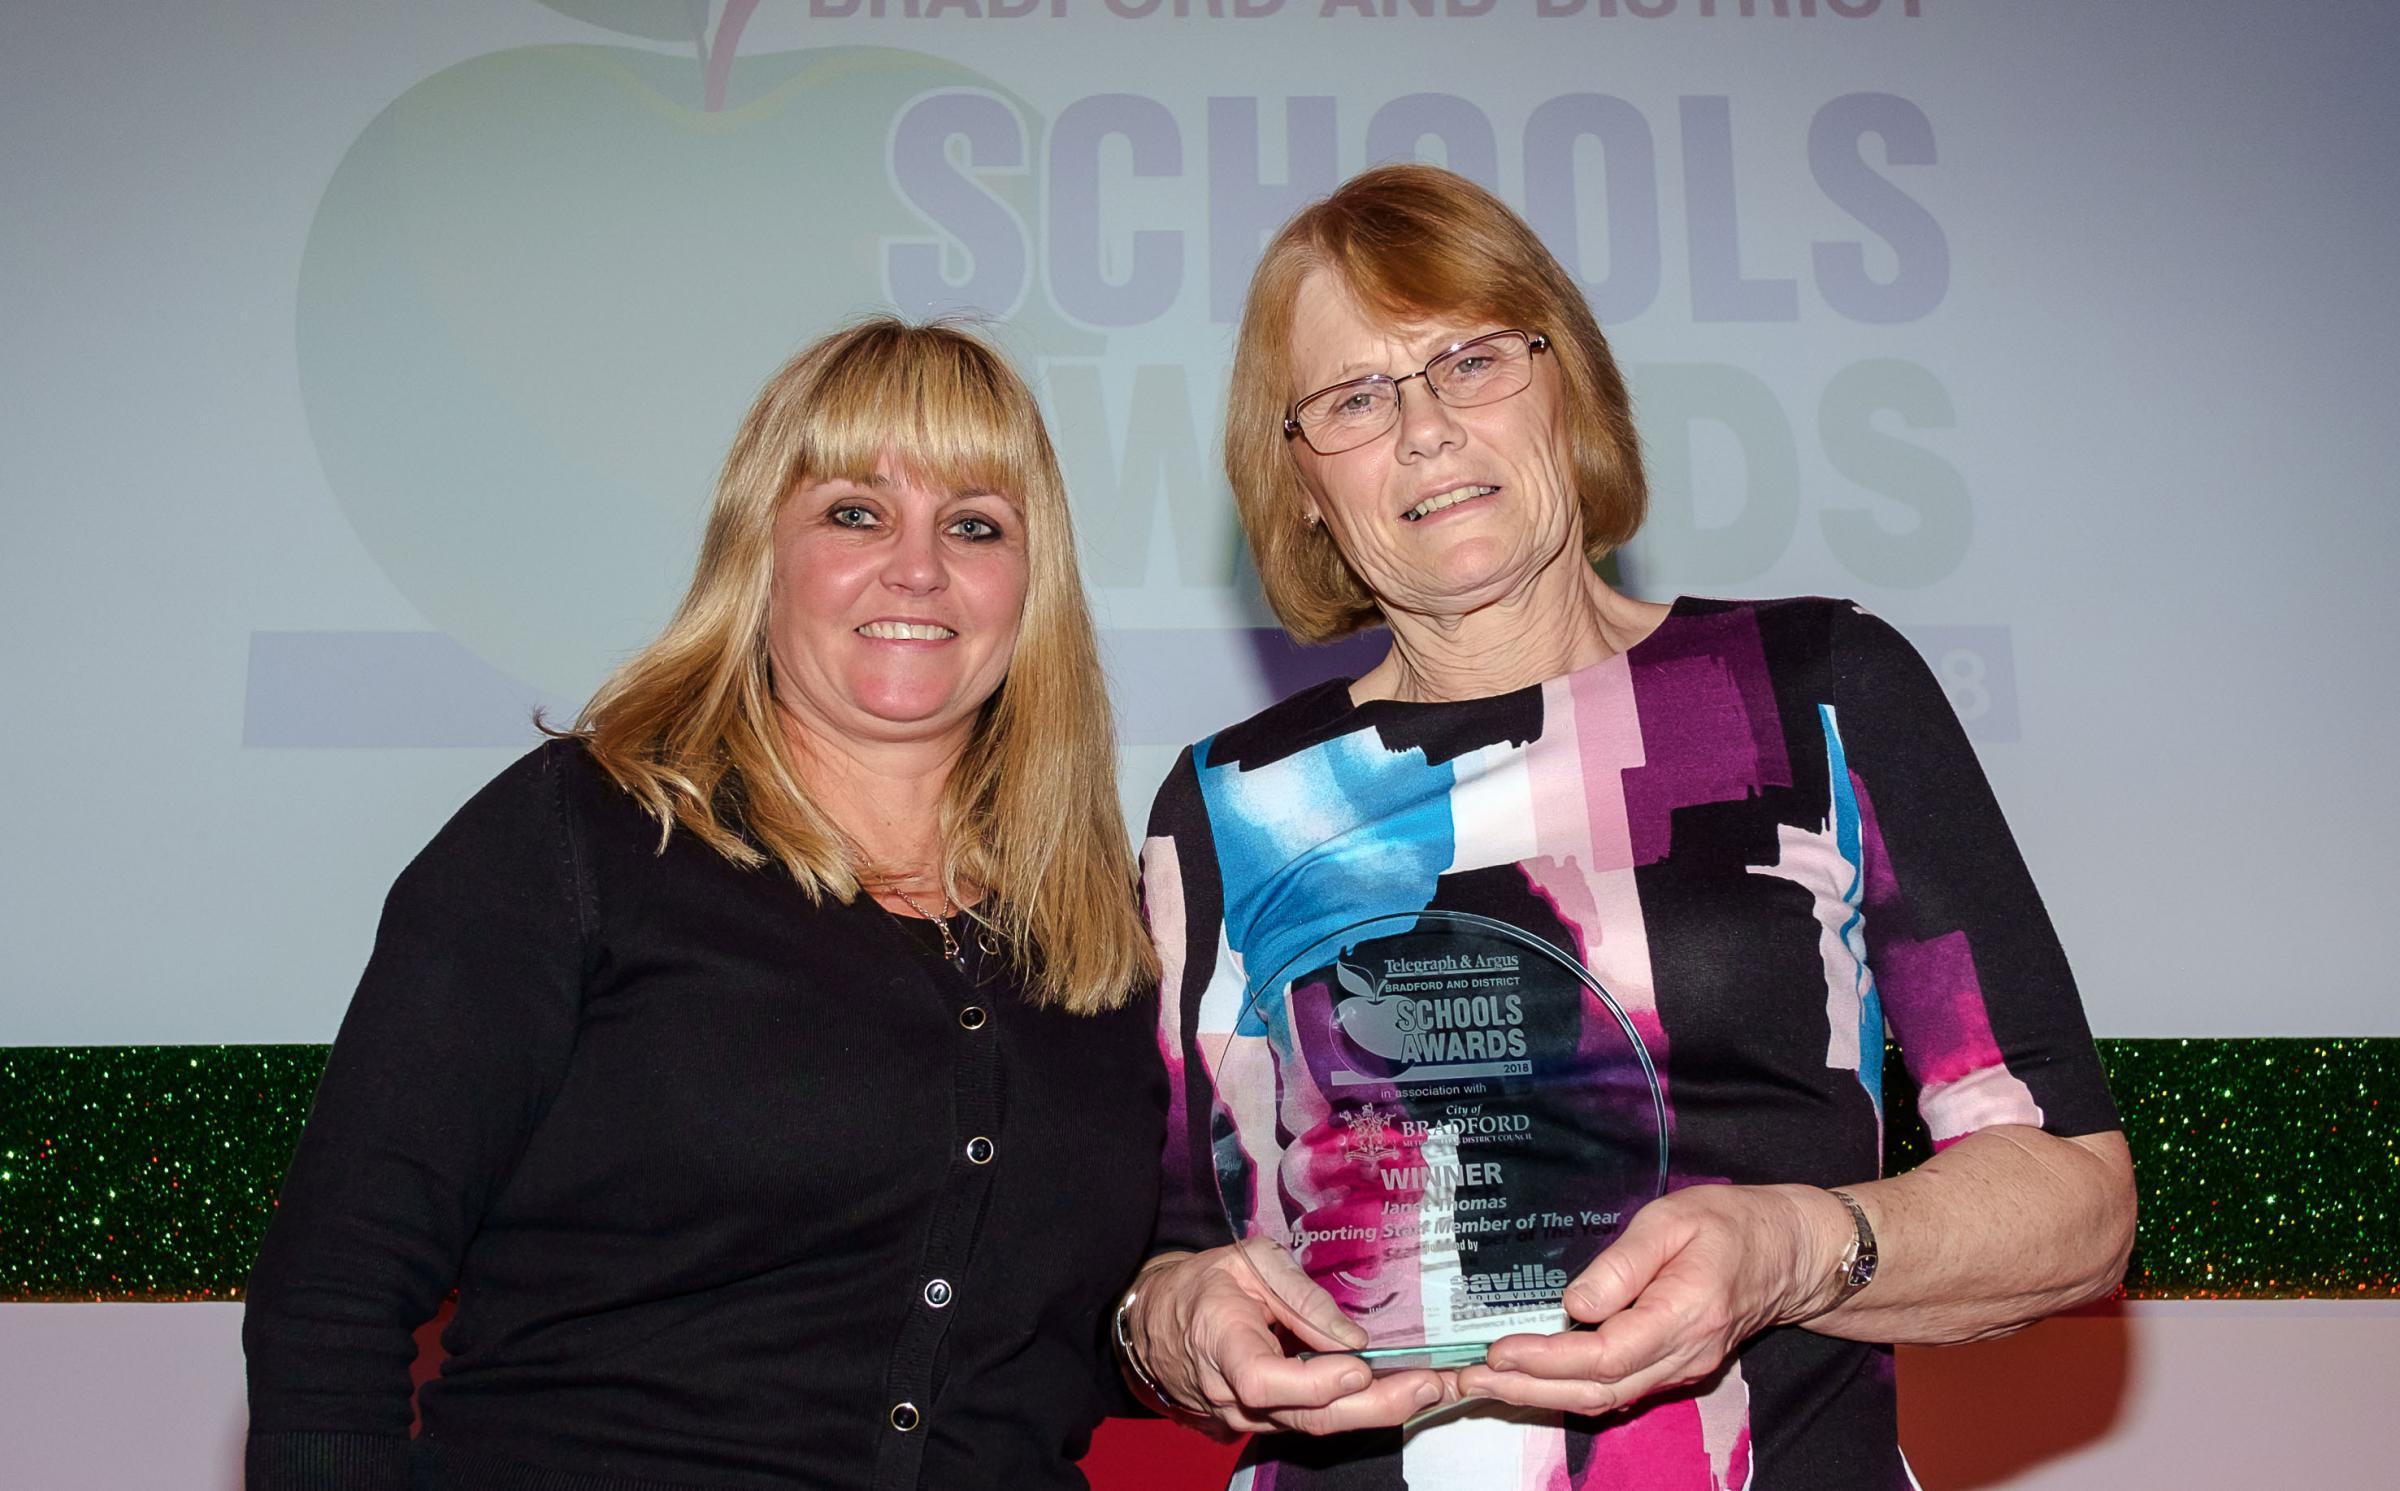 Anne Seddon of Saville AV with winner of the Supporting Staff Member Award, Janet Thomas of Canterbury Nursery School, at the 2018 T&A Bradford & District Schools Awards.